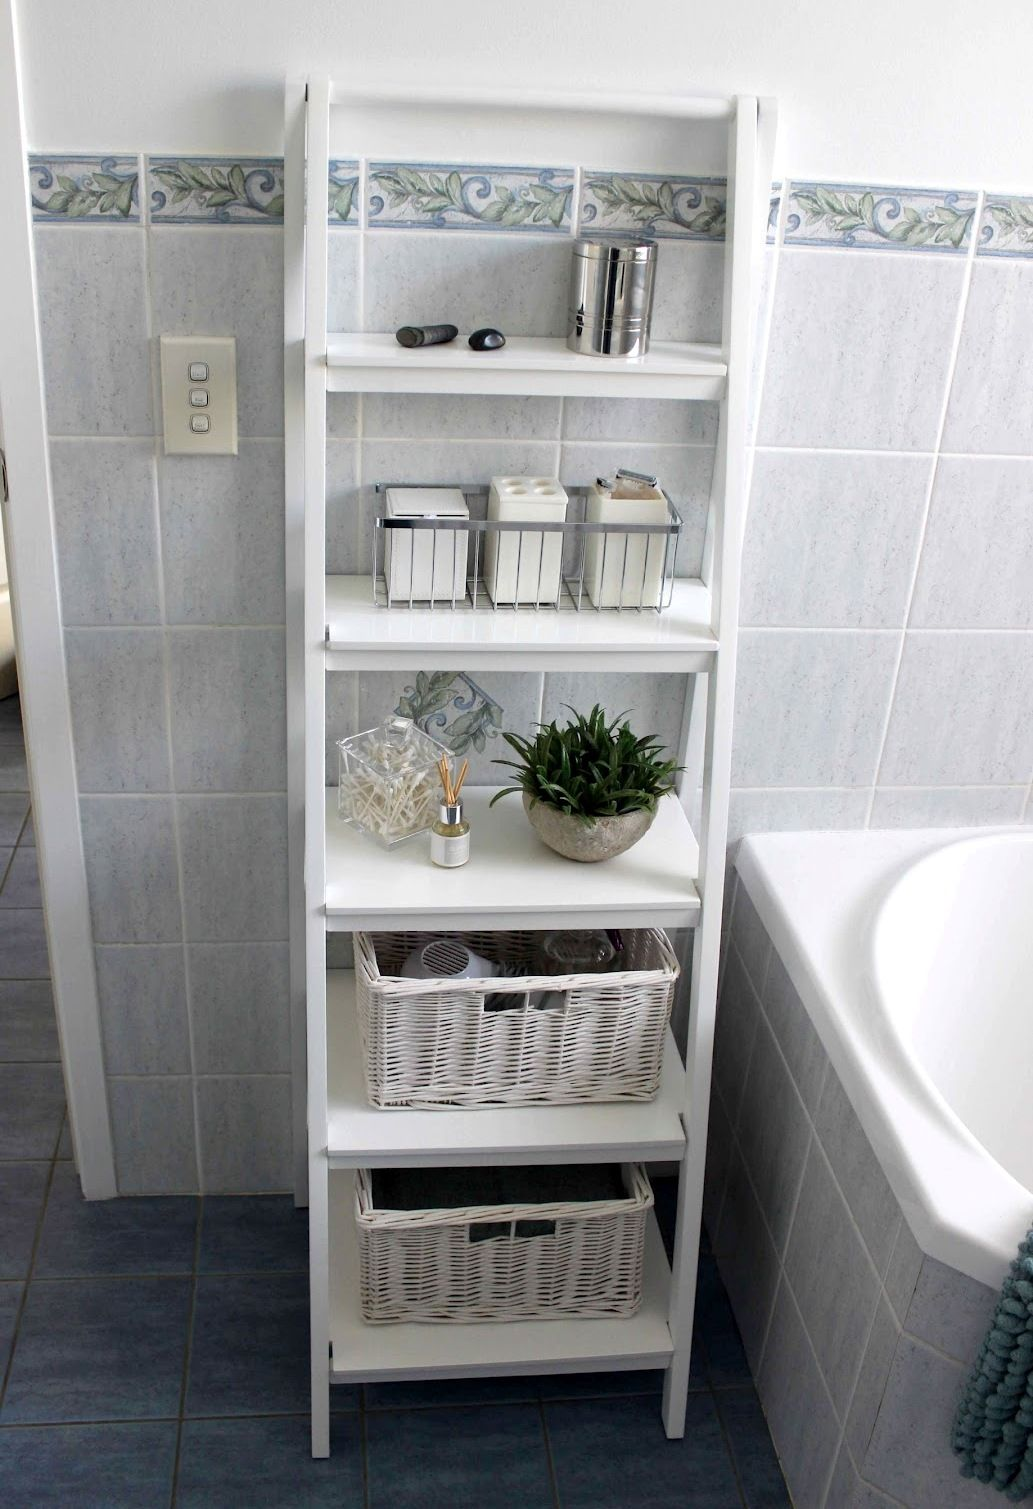 Small Bathroom Storage Ideas Small Bathroom Storage Contemporary - Storage solutions for small bathrooms for bathroom decor ideas